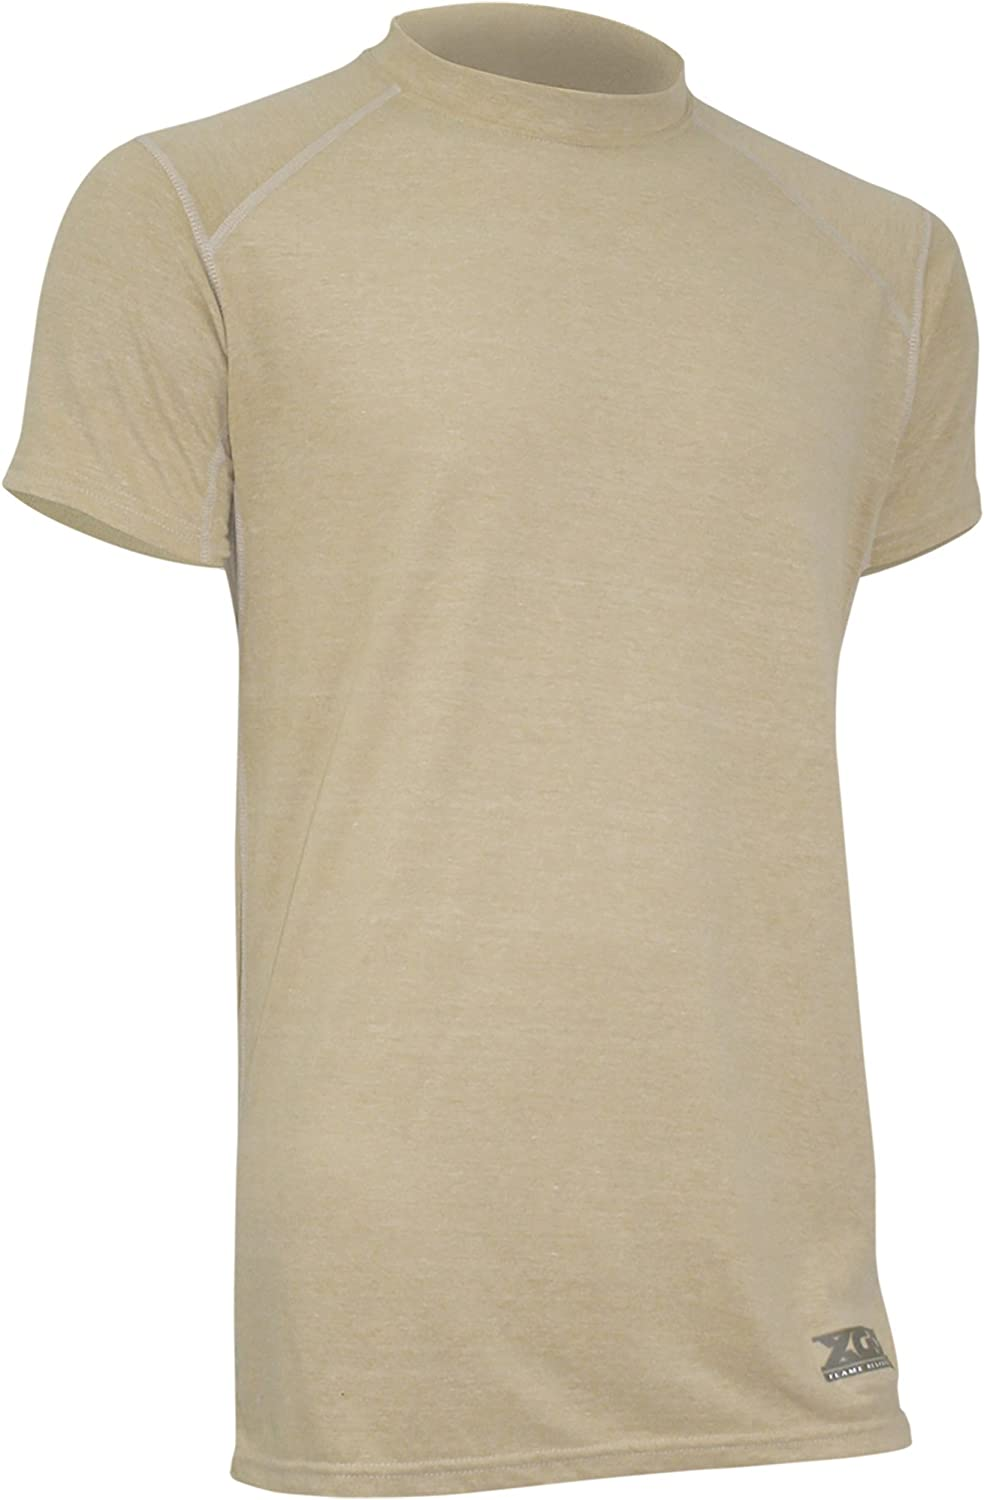 XGO Phase 1 Flame Retardant Short Sleeve Shirt - Men's